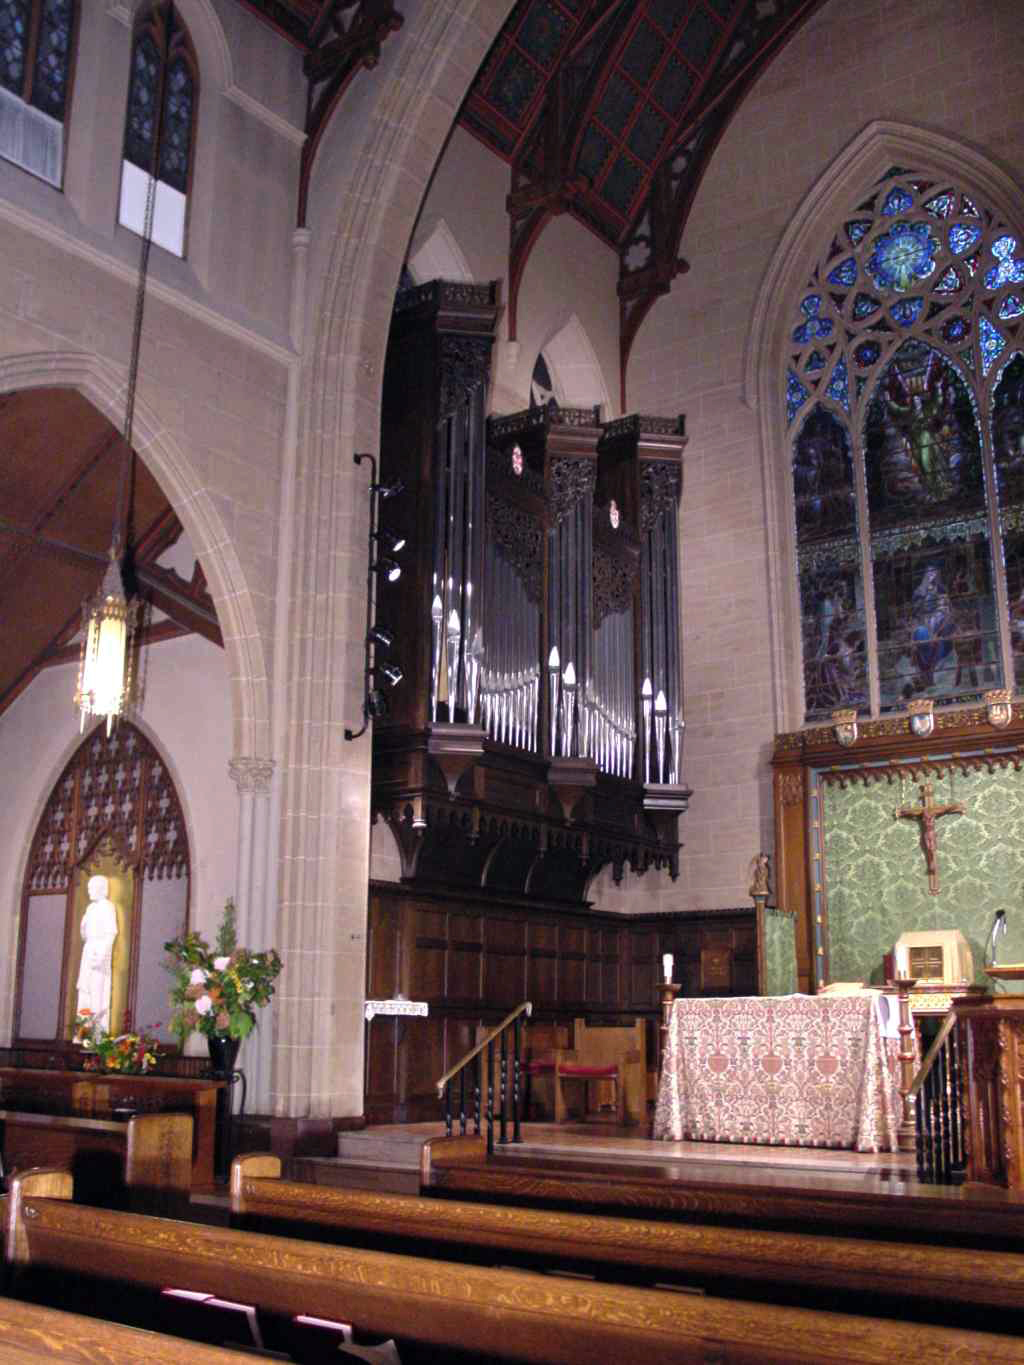 Lively-Fulcher Organ (1998) - Church of St. Thomas More - New York City (photo: Steven E. Lawson)